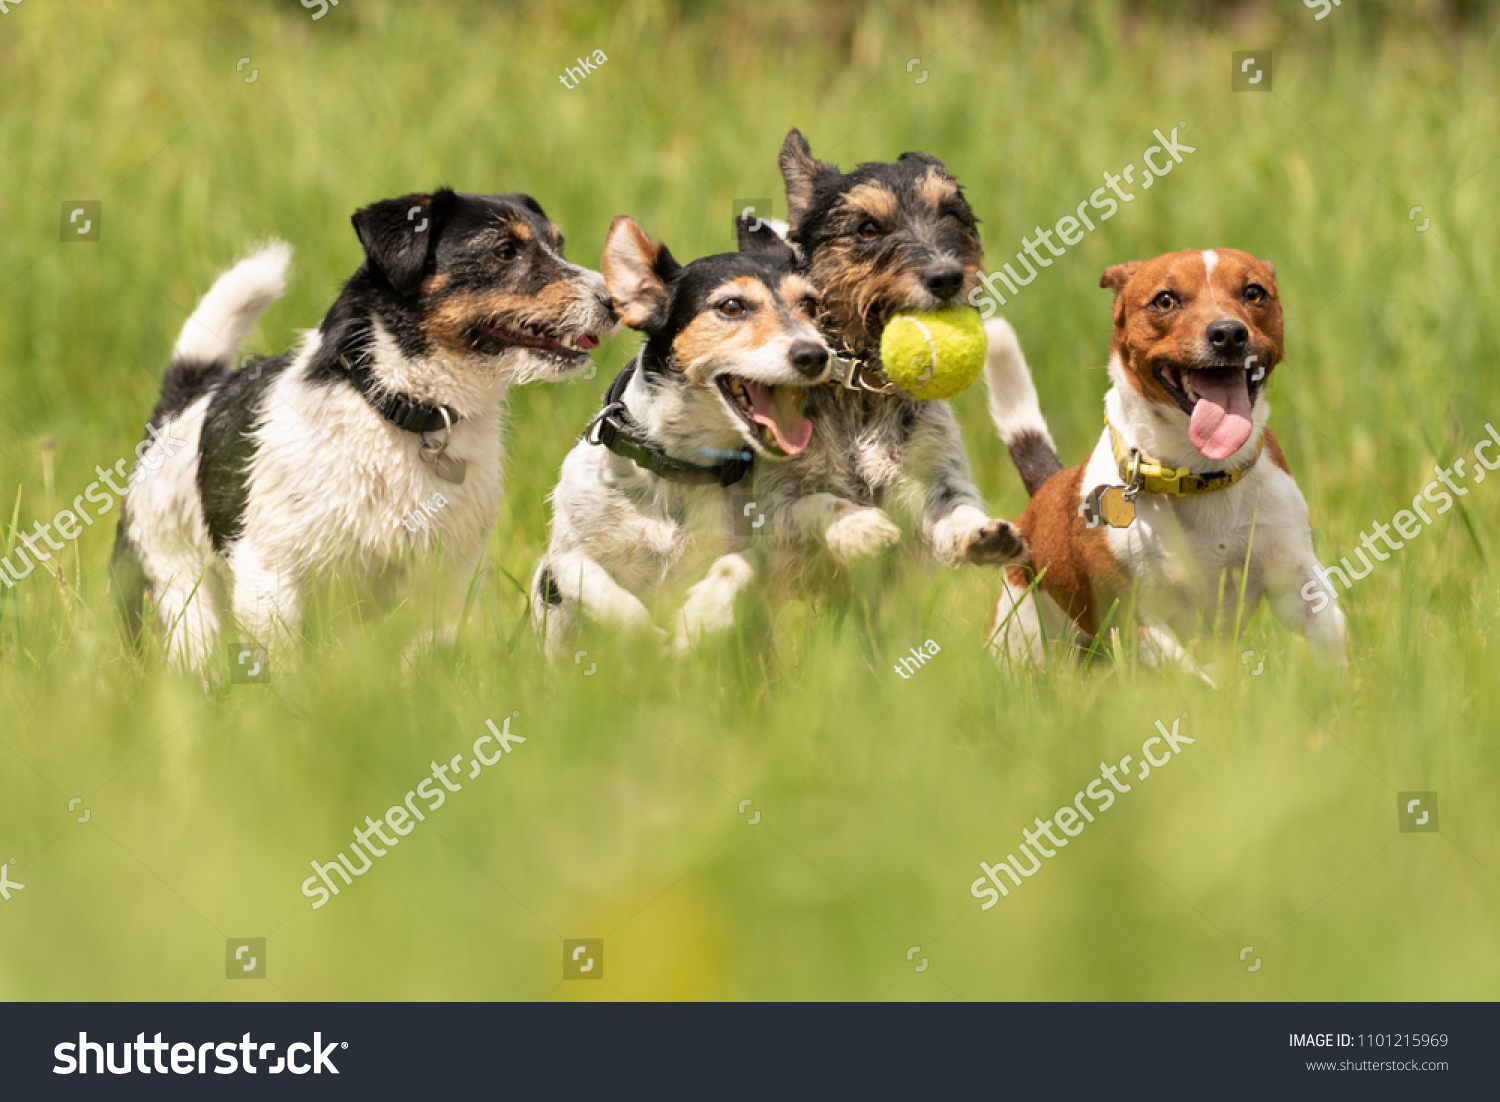 Many dogs run and play with a ball in a meadow - a cute pack of Jack Russell Terriers #1101215969